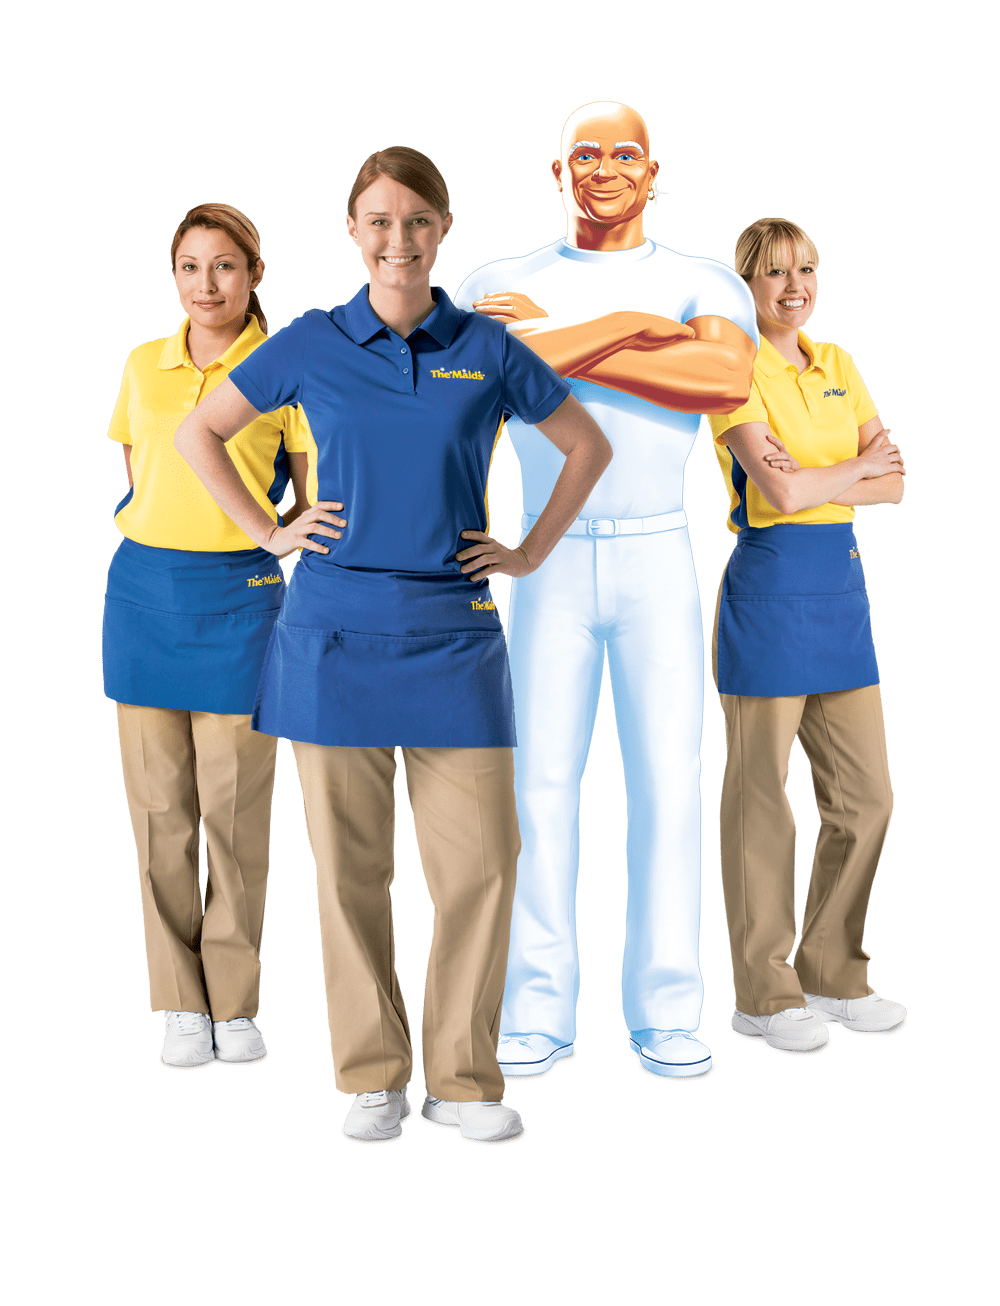 The Maids House Cleaning - The Maids in Dallas/Ft. Worth Metroplex Home Cleaning